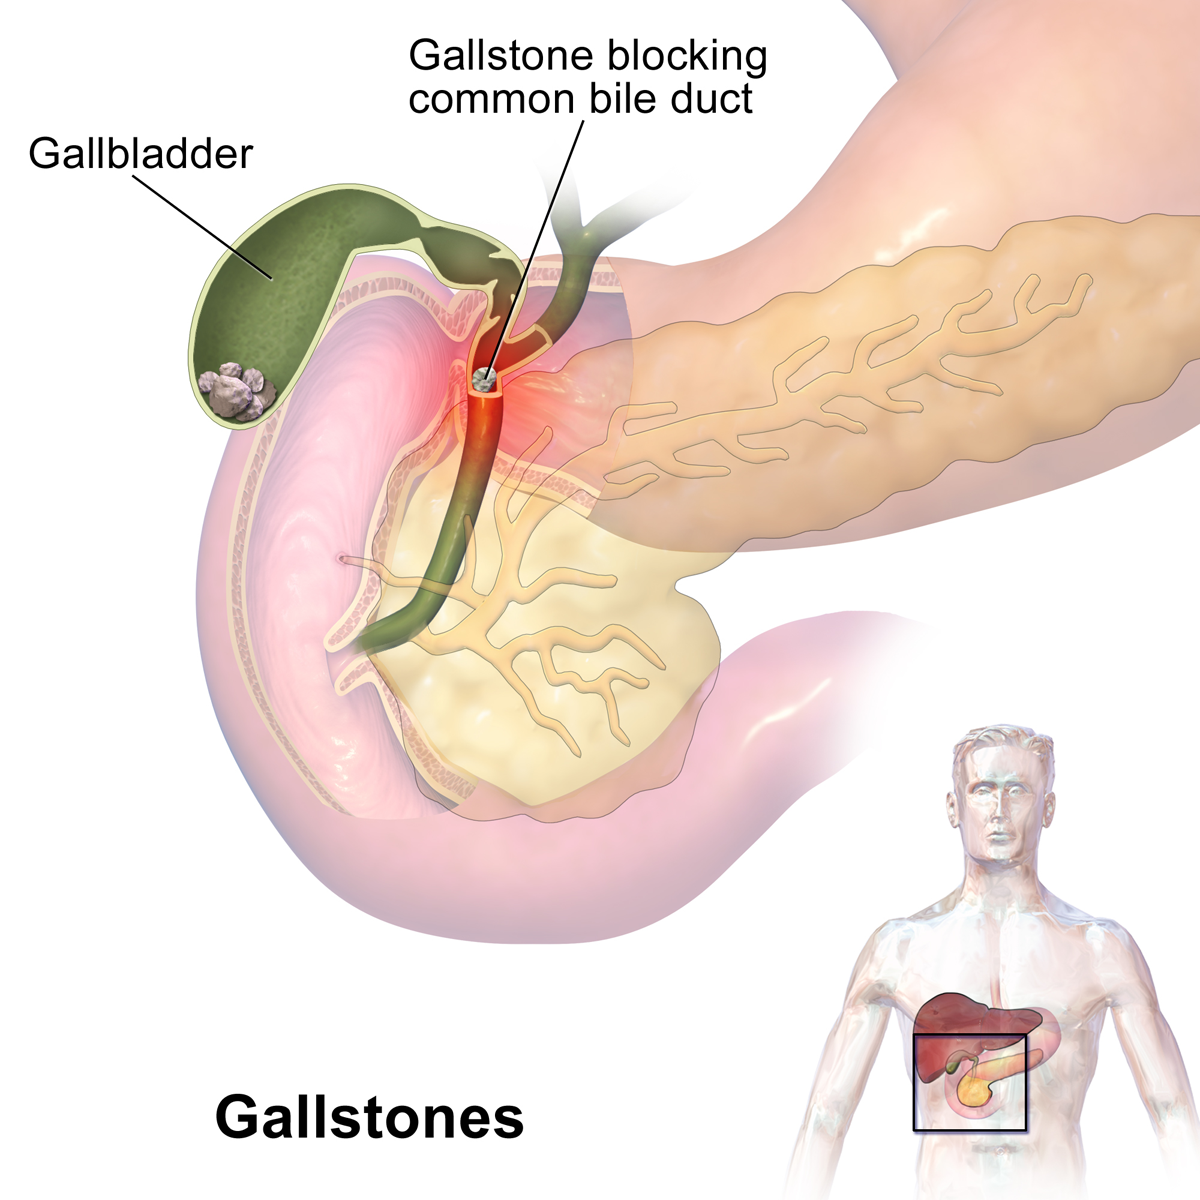 Gallstones Can Cause Sudden Pain In The Upper Right Abdomen This Called A Gallbladder Or Biliary Colic Occurs When Block Ducts